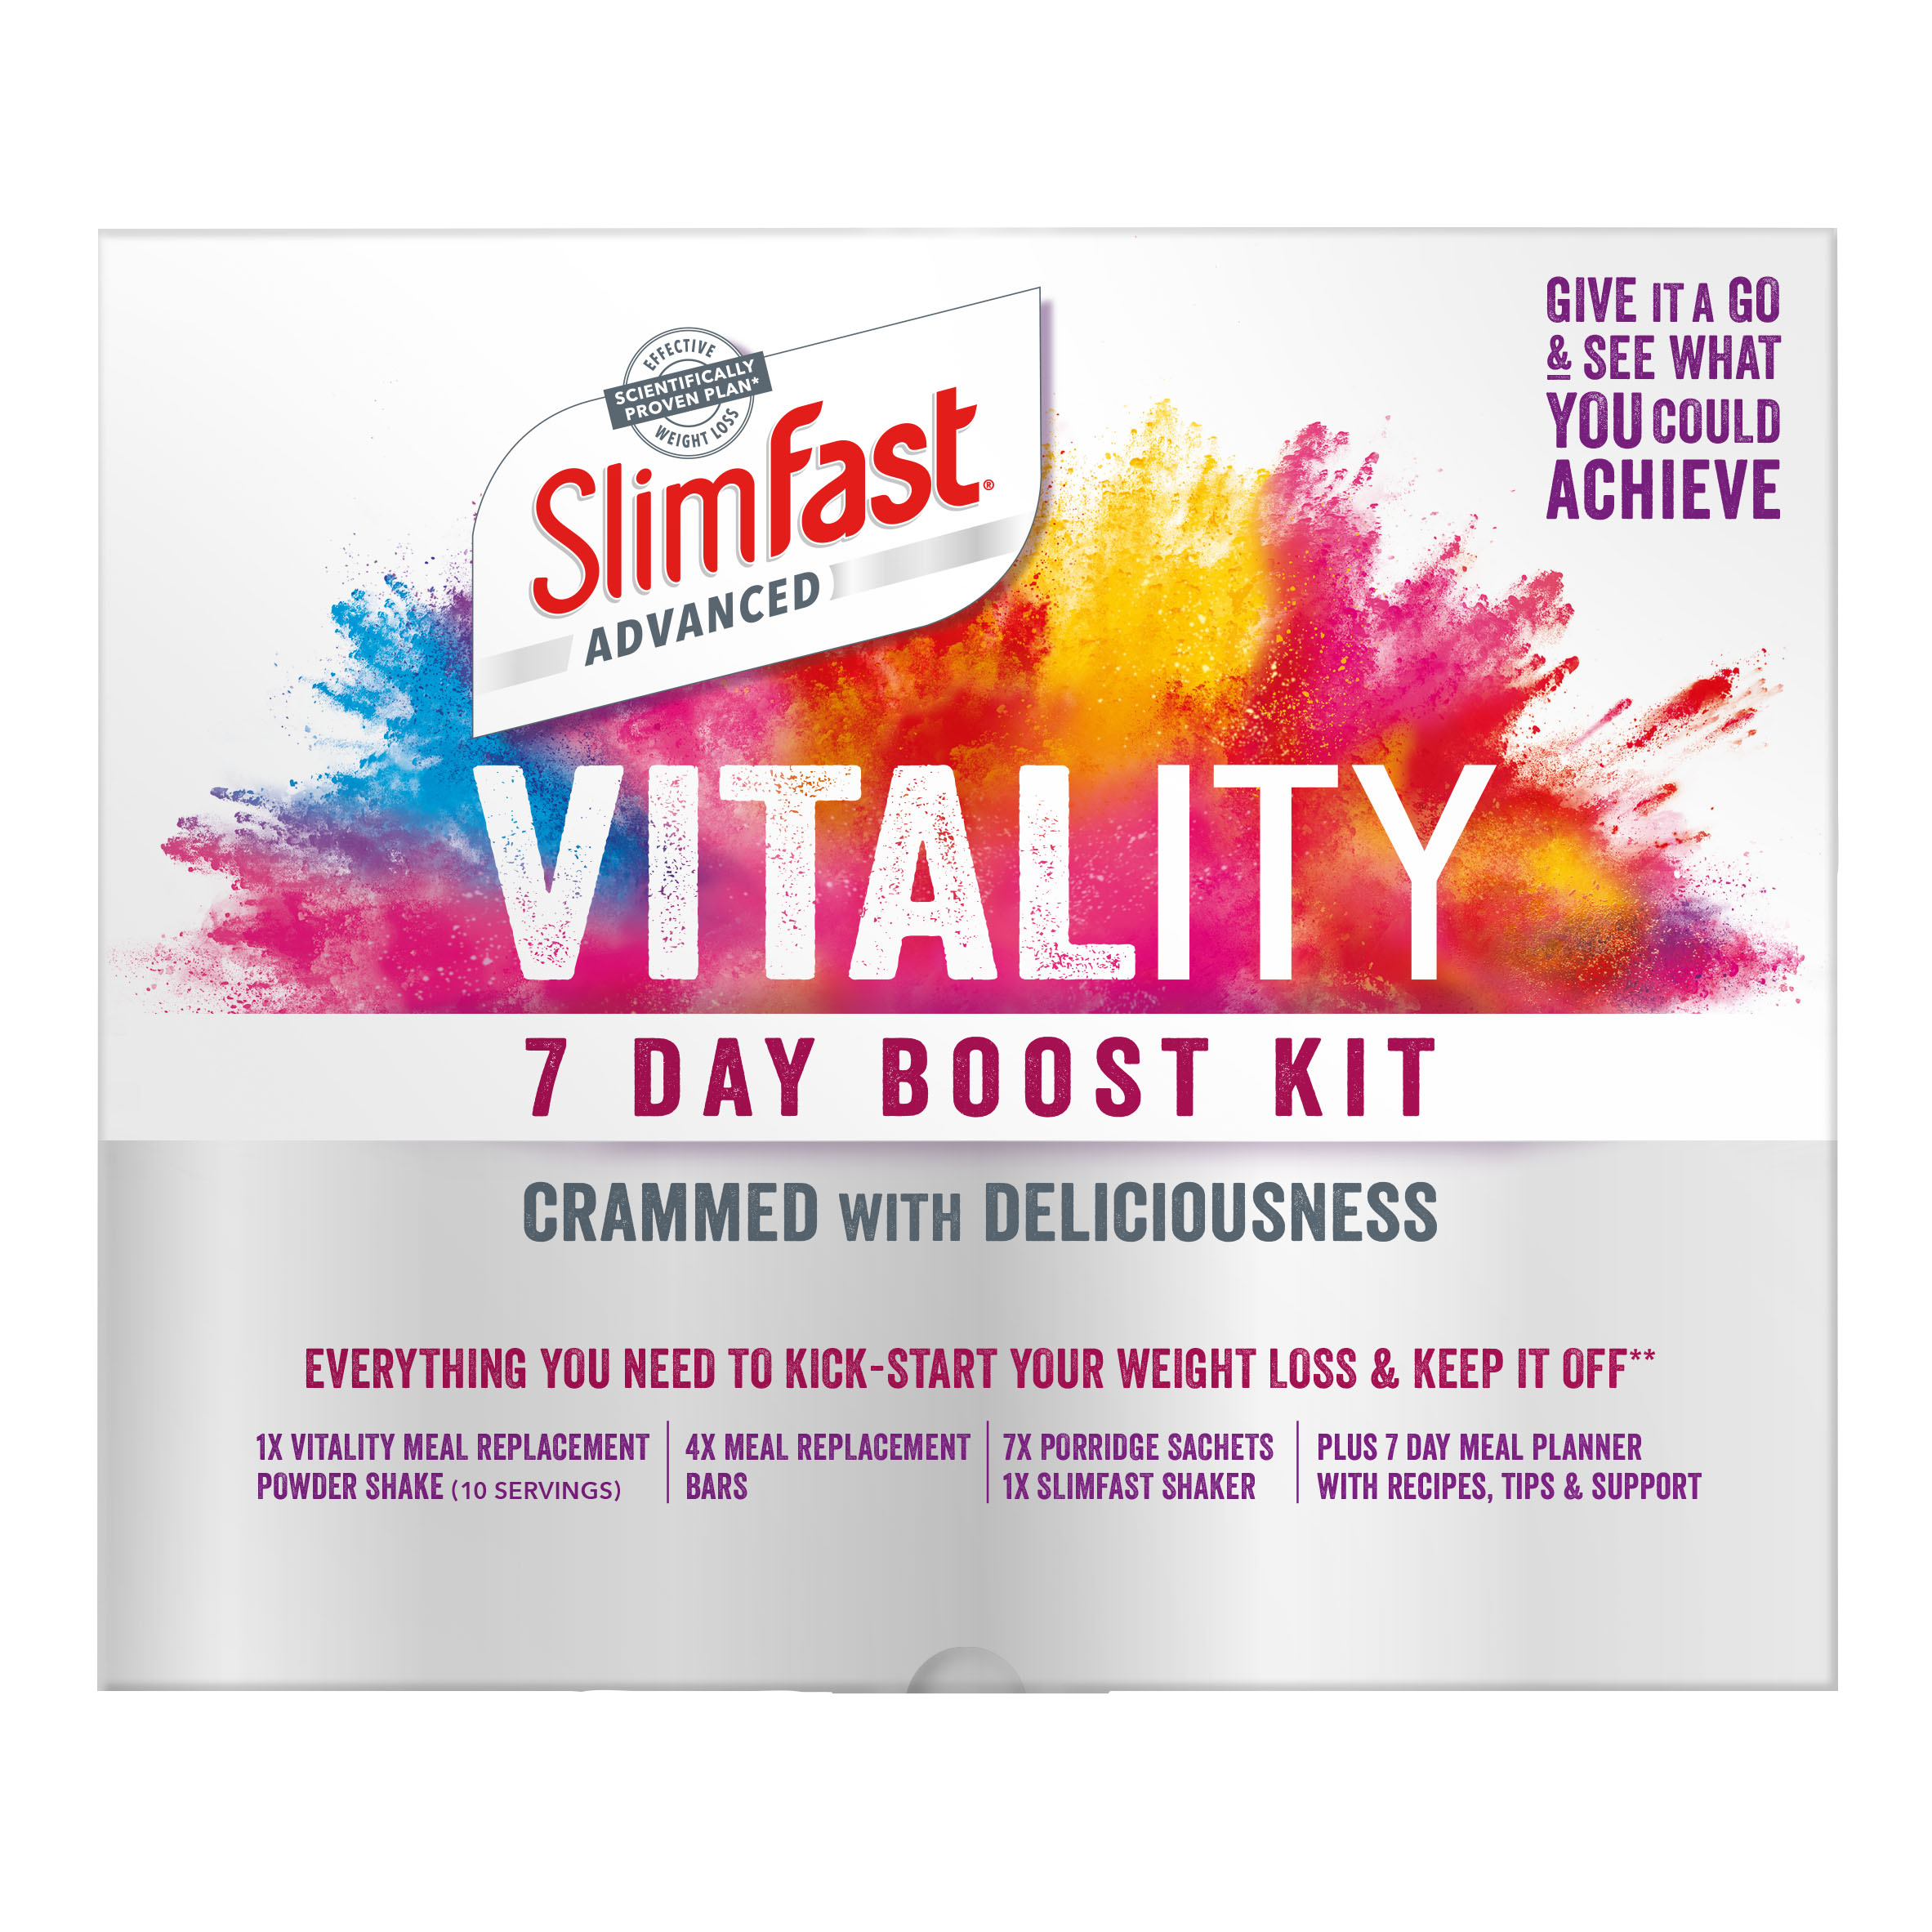 Vitality 7 Day Boost Kit